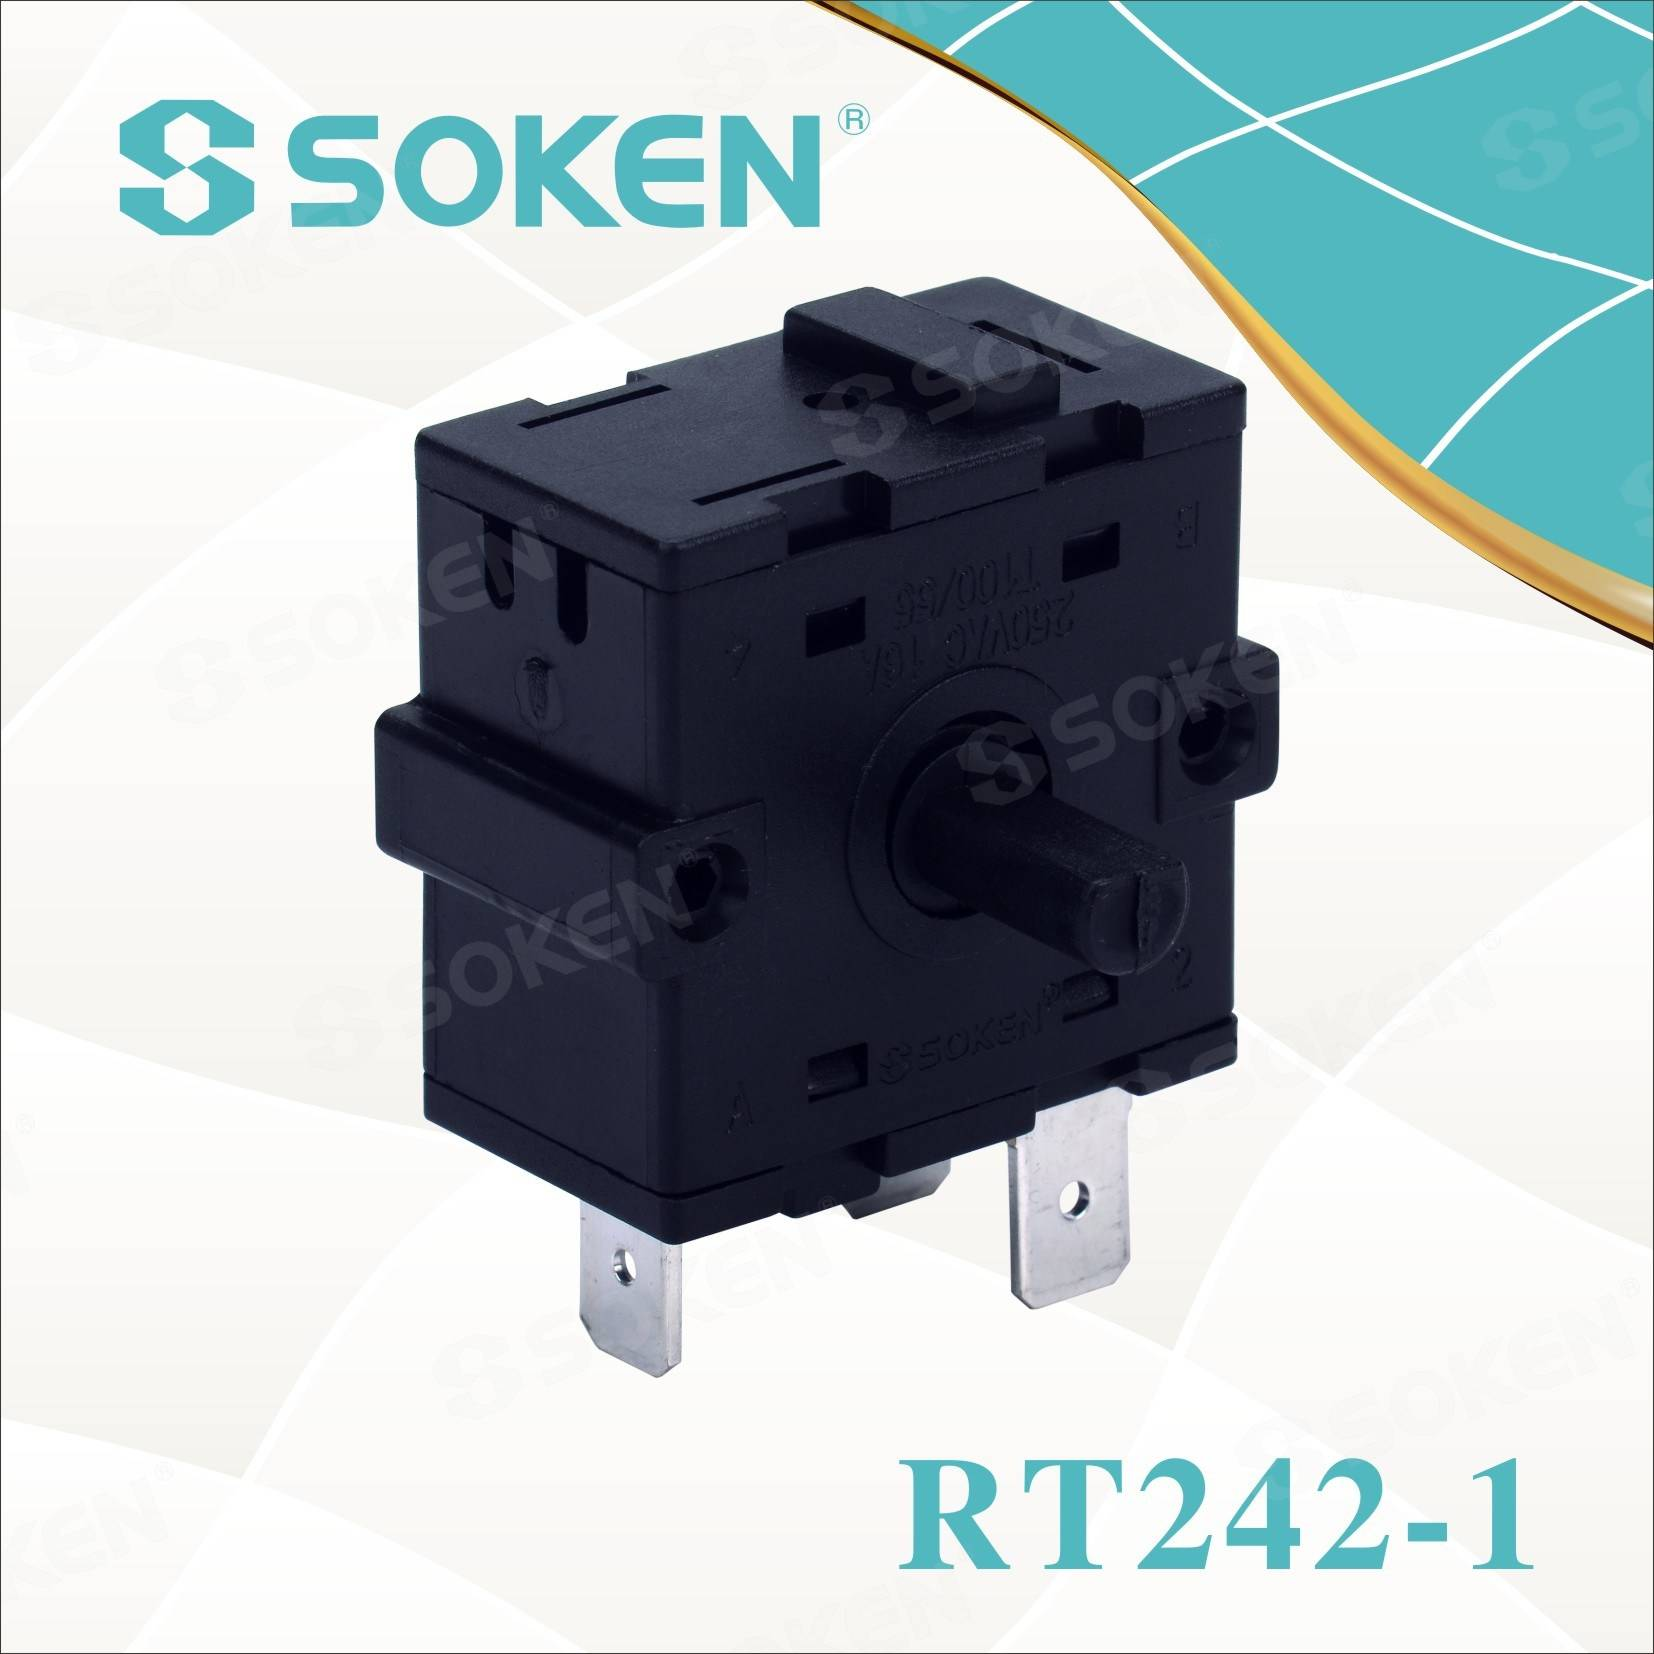 Soken Rotary Switch for Cooker